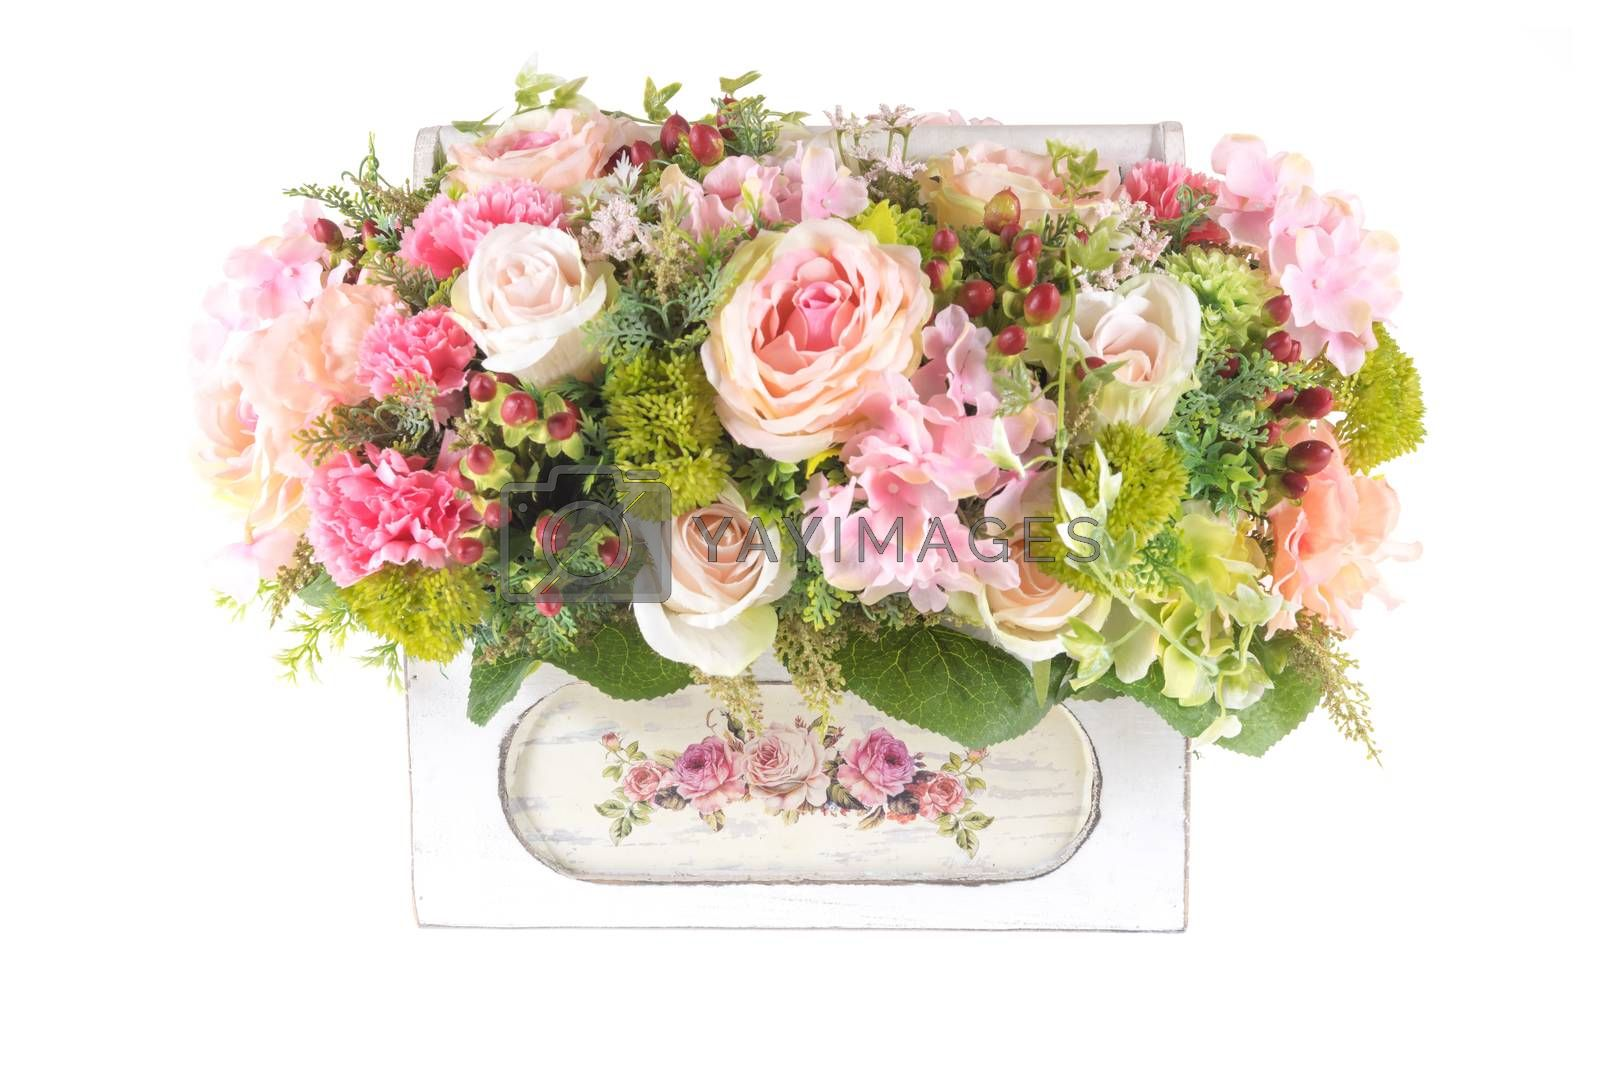 Royalty free image of Decoration artificial plastic flower with vintage design basket by iamway